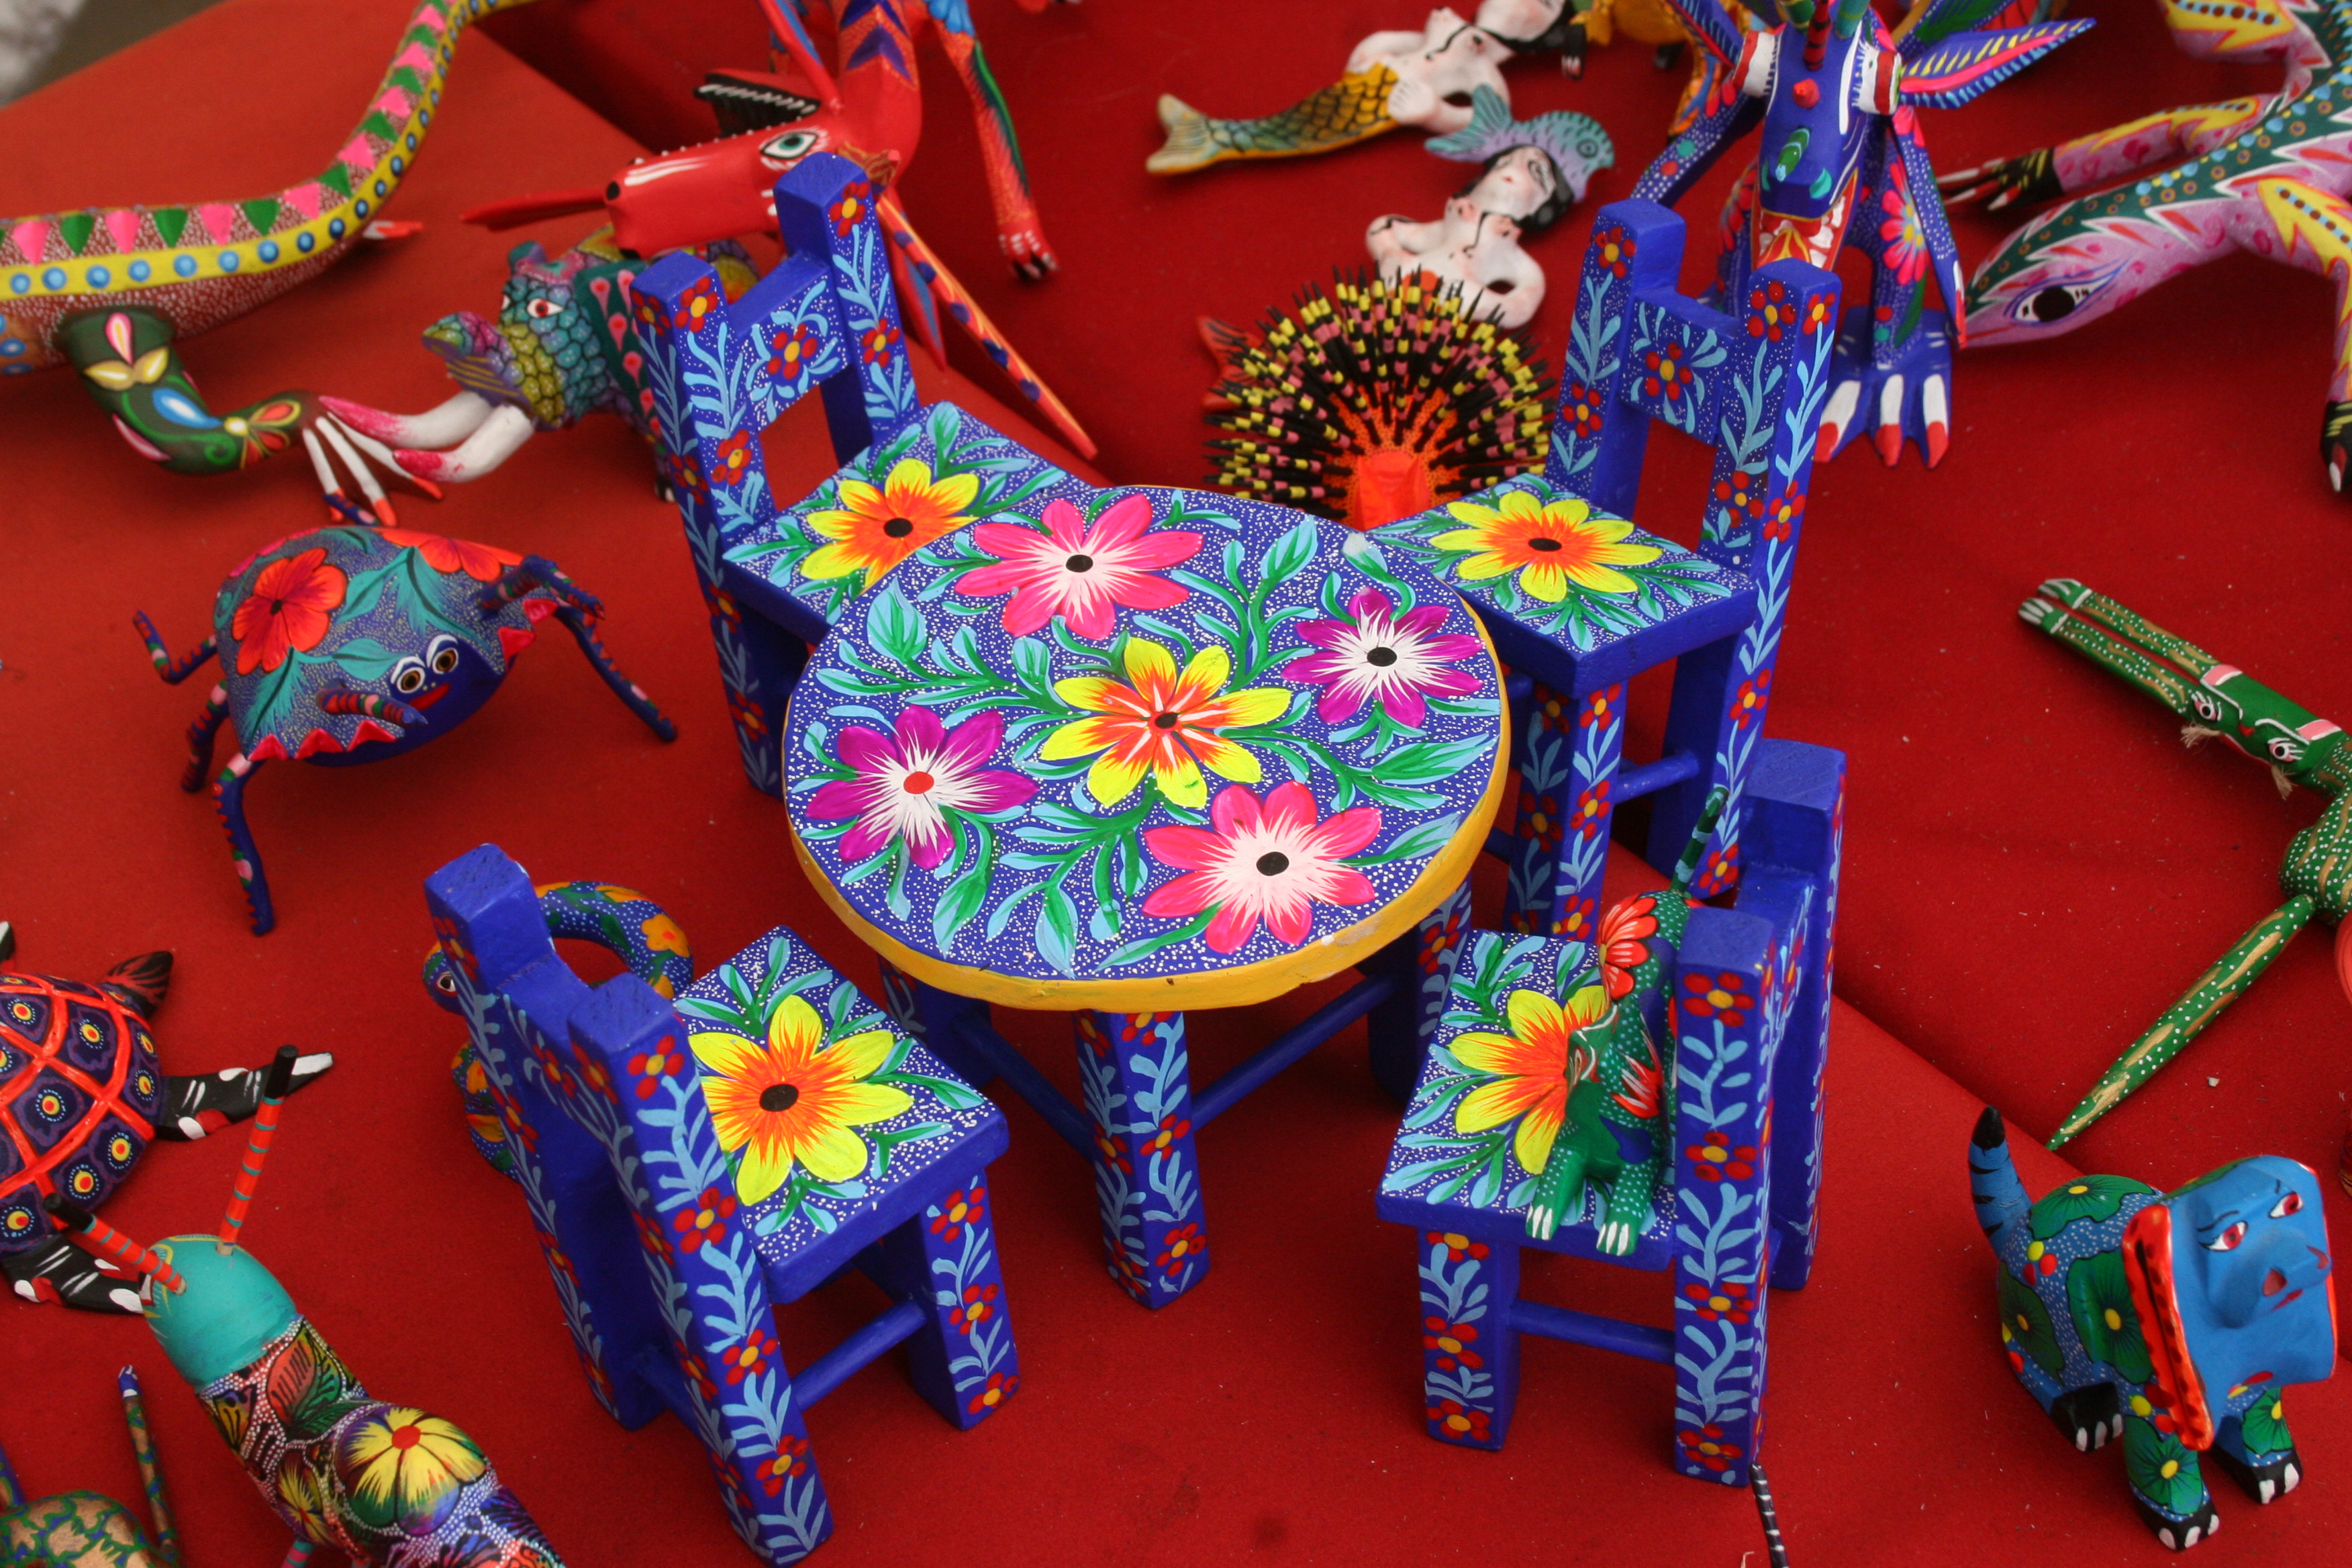 Table at a flea market at the mardi gras casino in hollywood florida